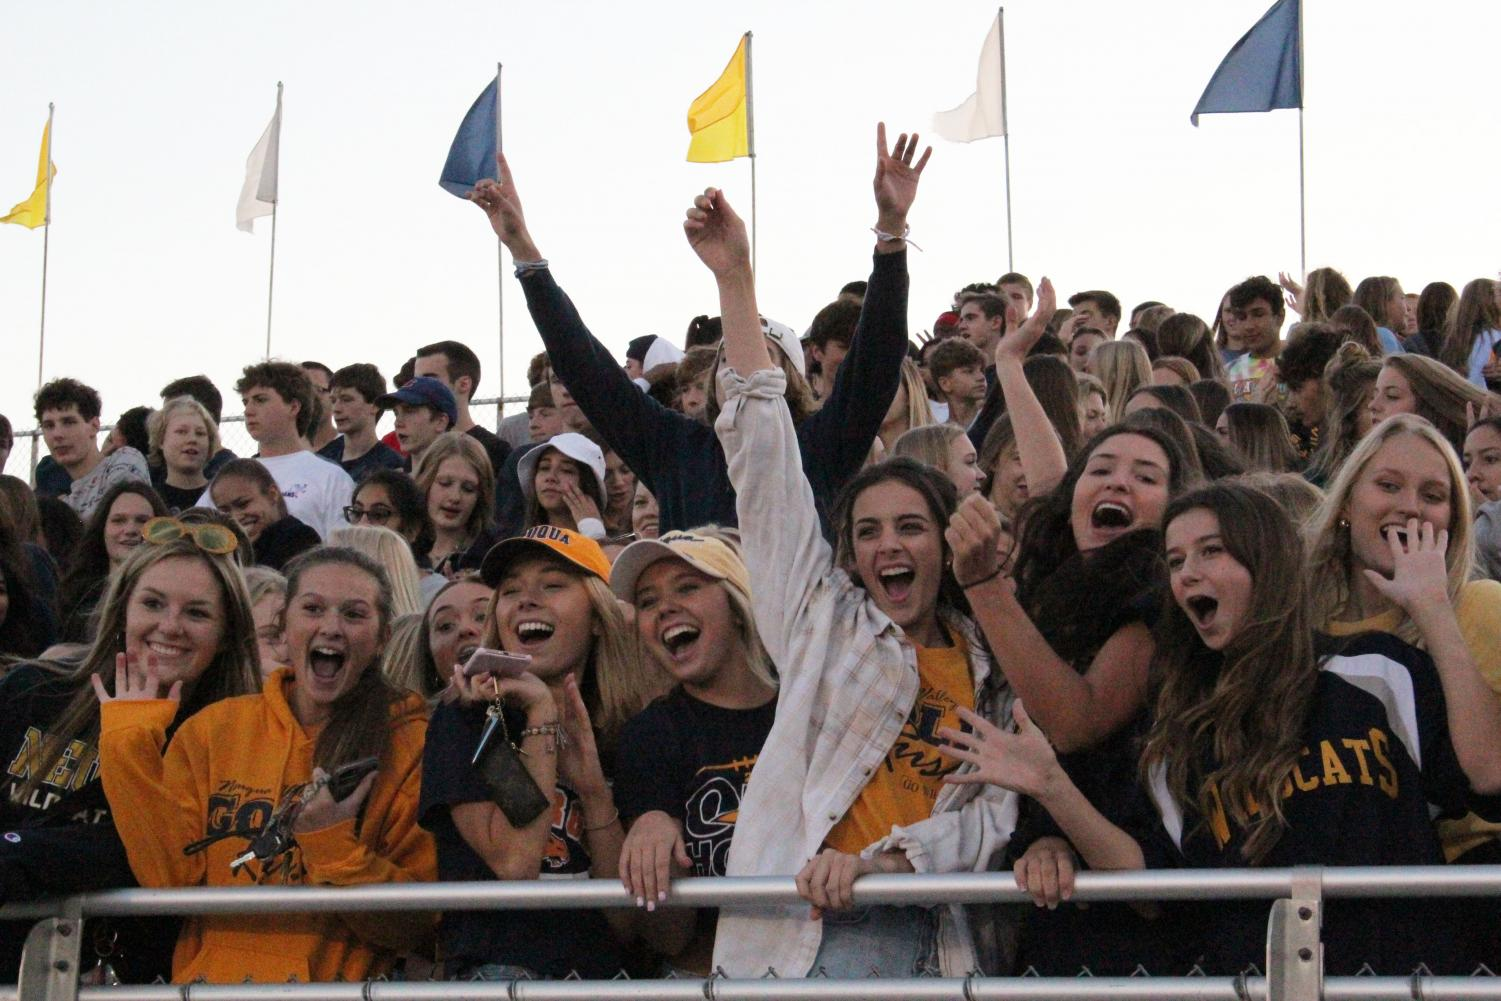 The+Neuqua+Valley+Gold+Rush+section+%0A+Scrimmage+Night+%2808%2F23%2F2019%29+